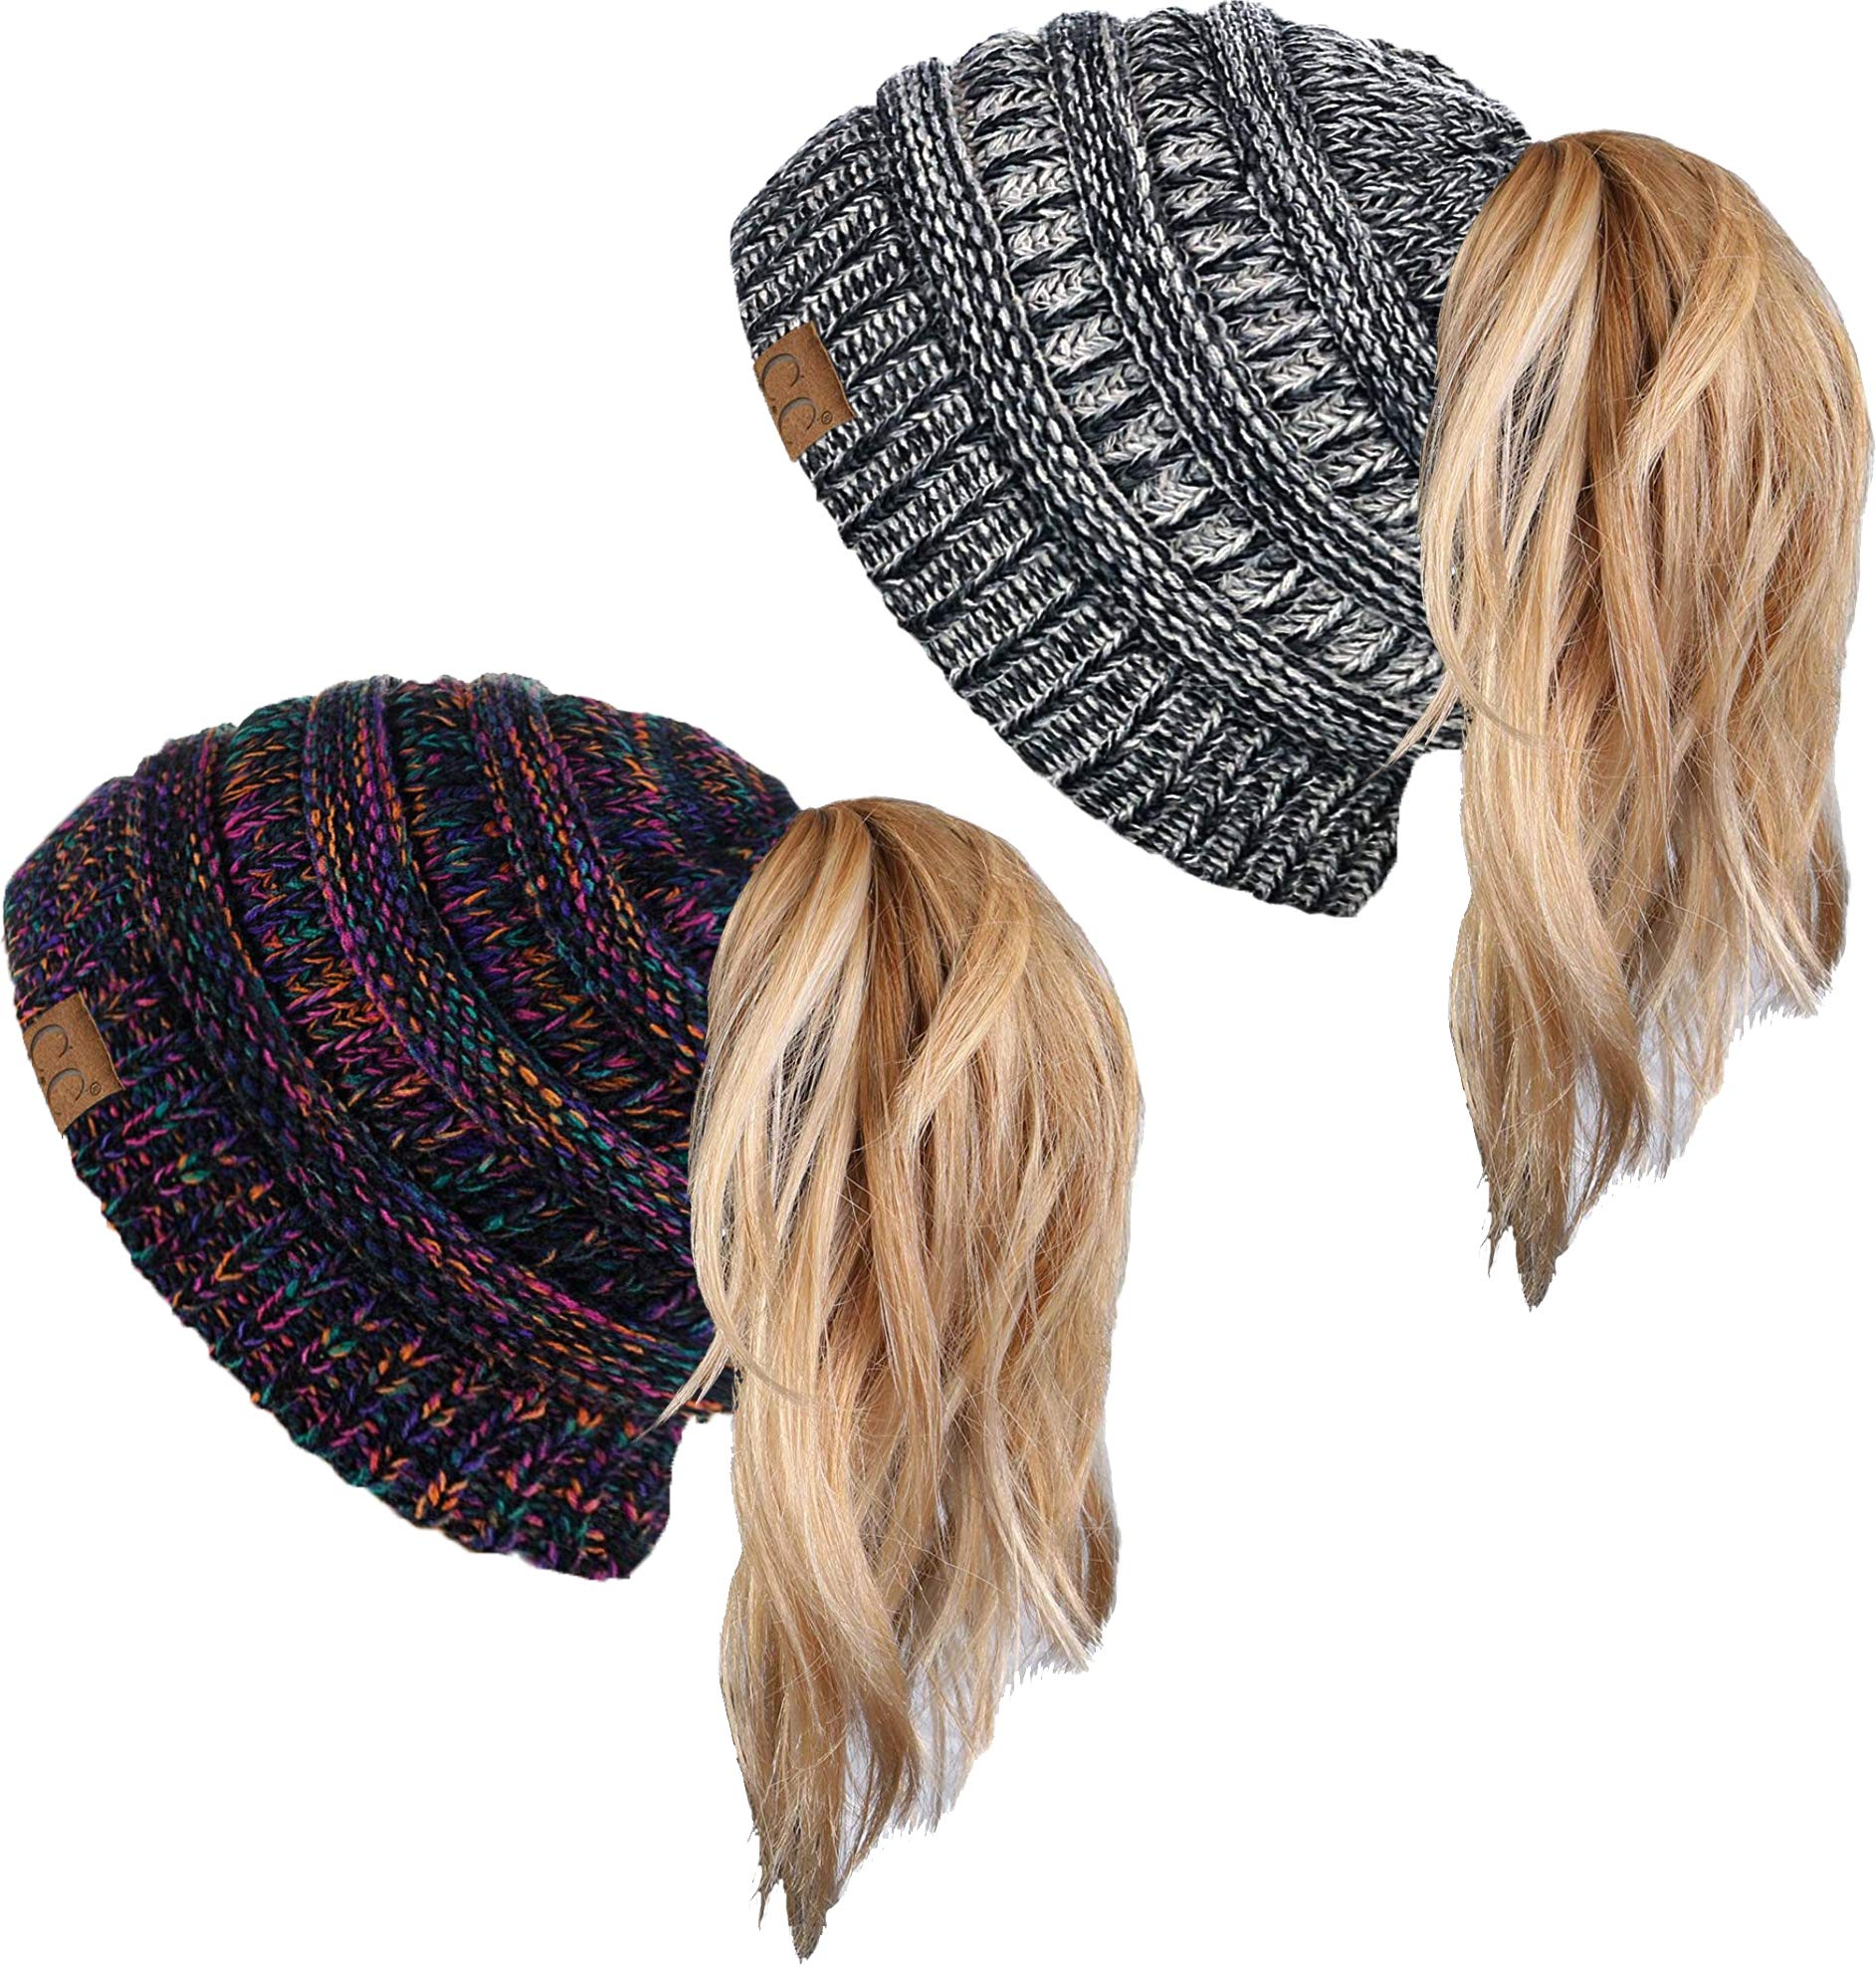 BT-6800-2-816.060821 Beanie Tail Bundle - 1 Kaleidoscope #32, 1 Grey #31 (2 Pack) by Funky Junque (Image #1)